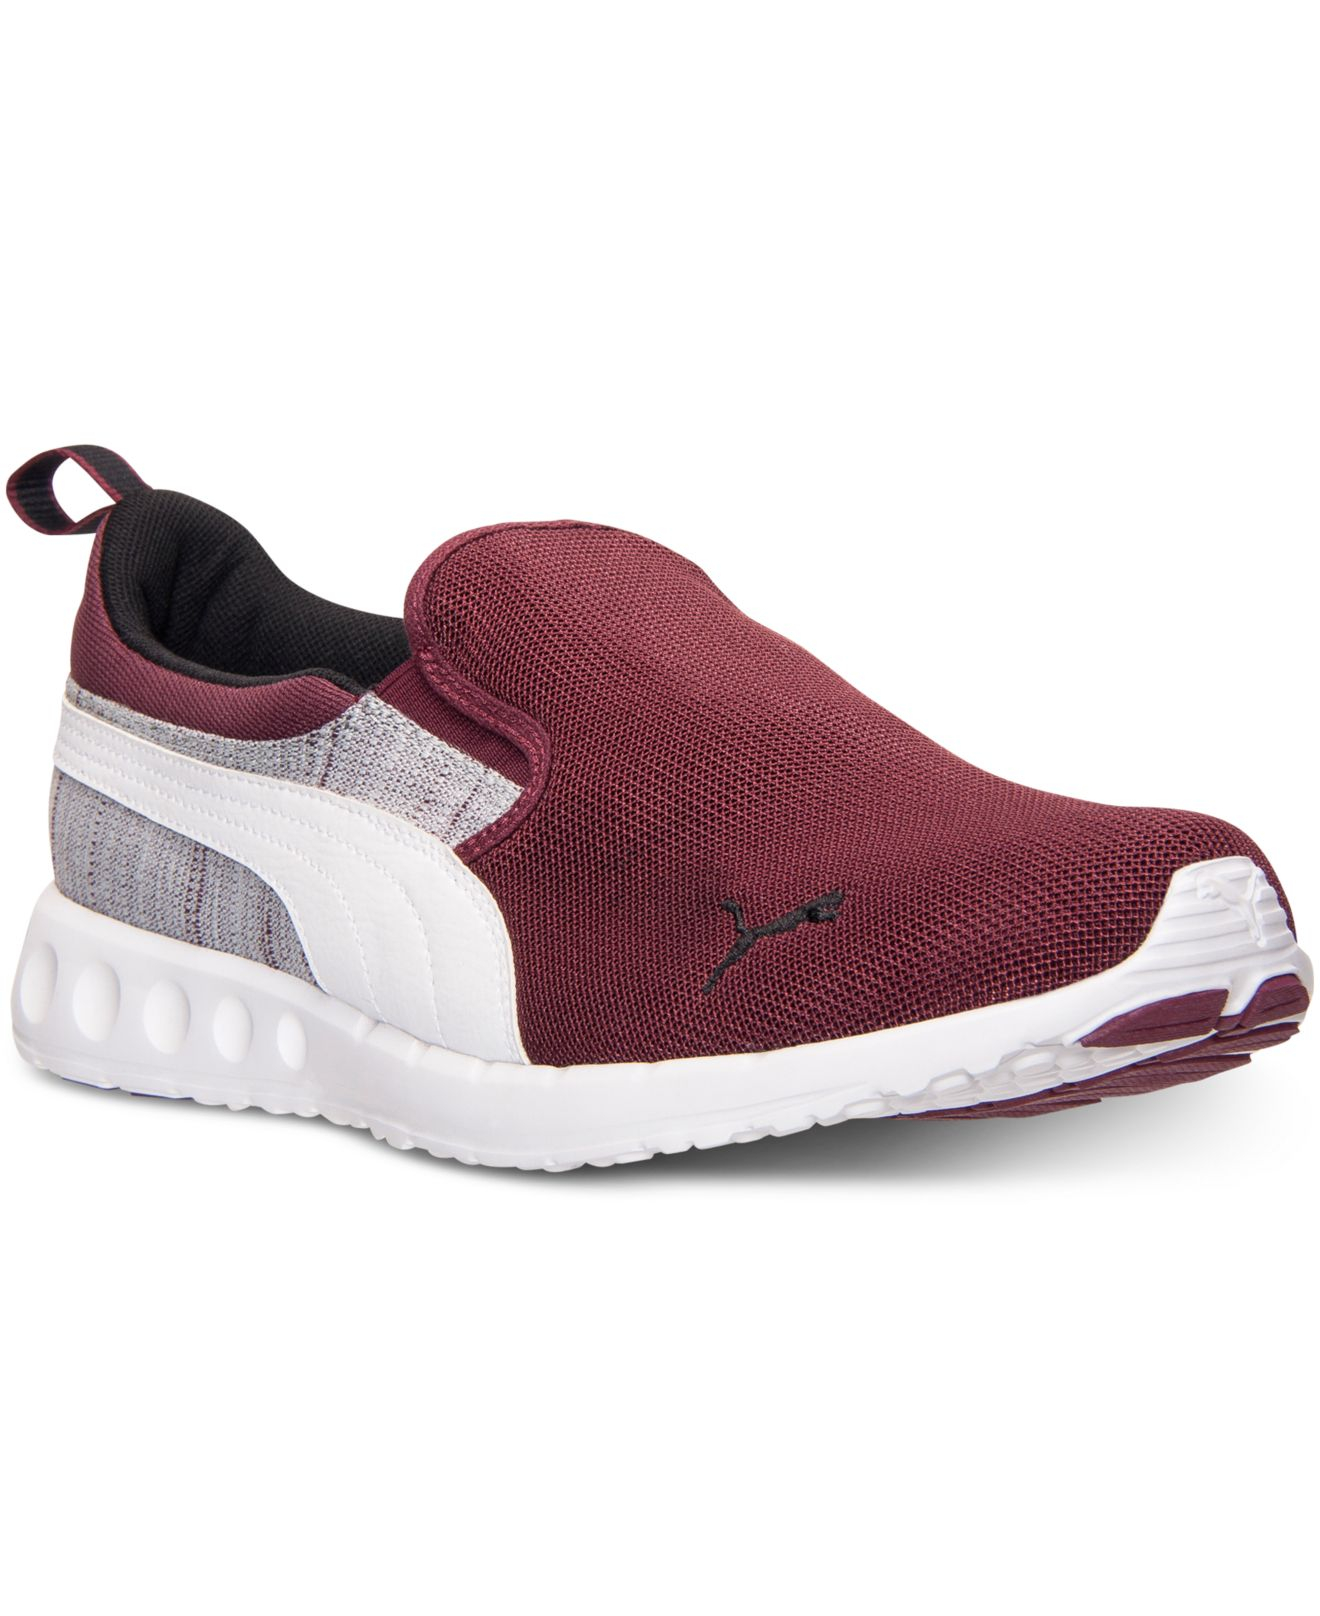 s carson runner slip on casual sneakers from